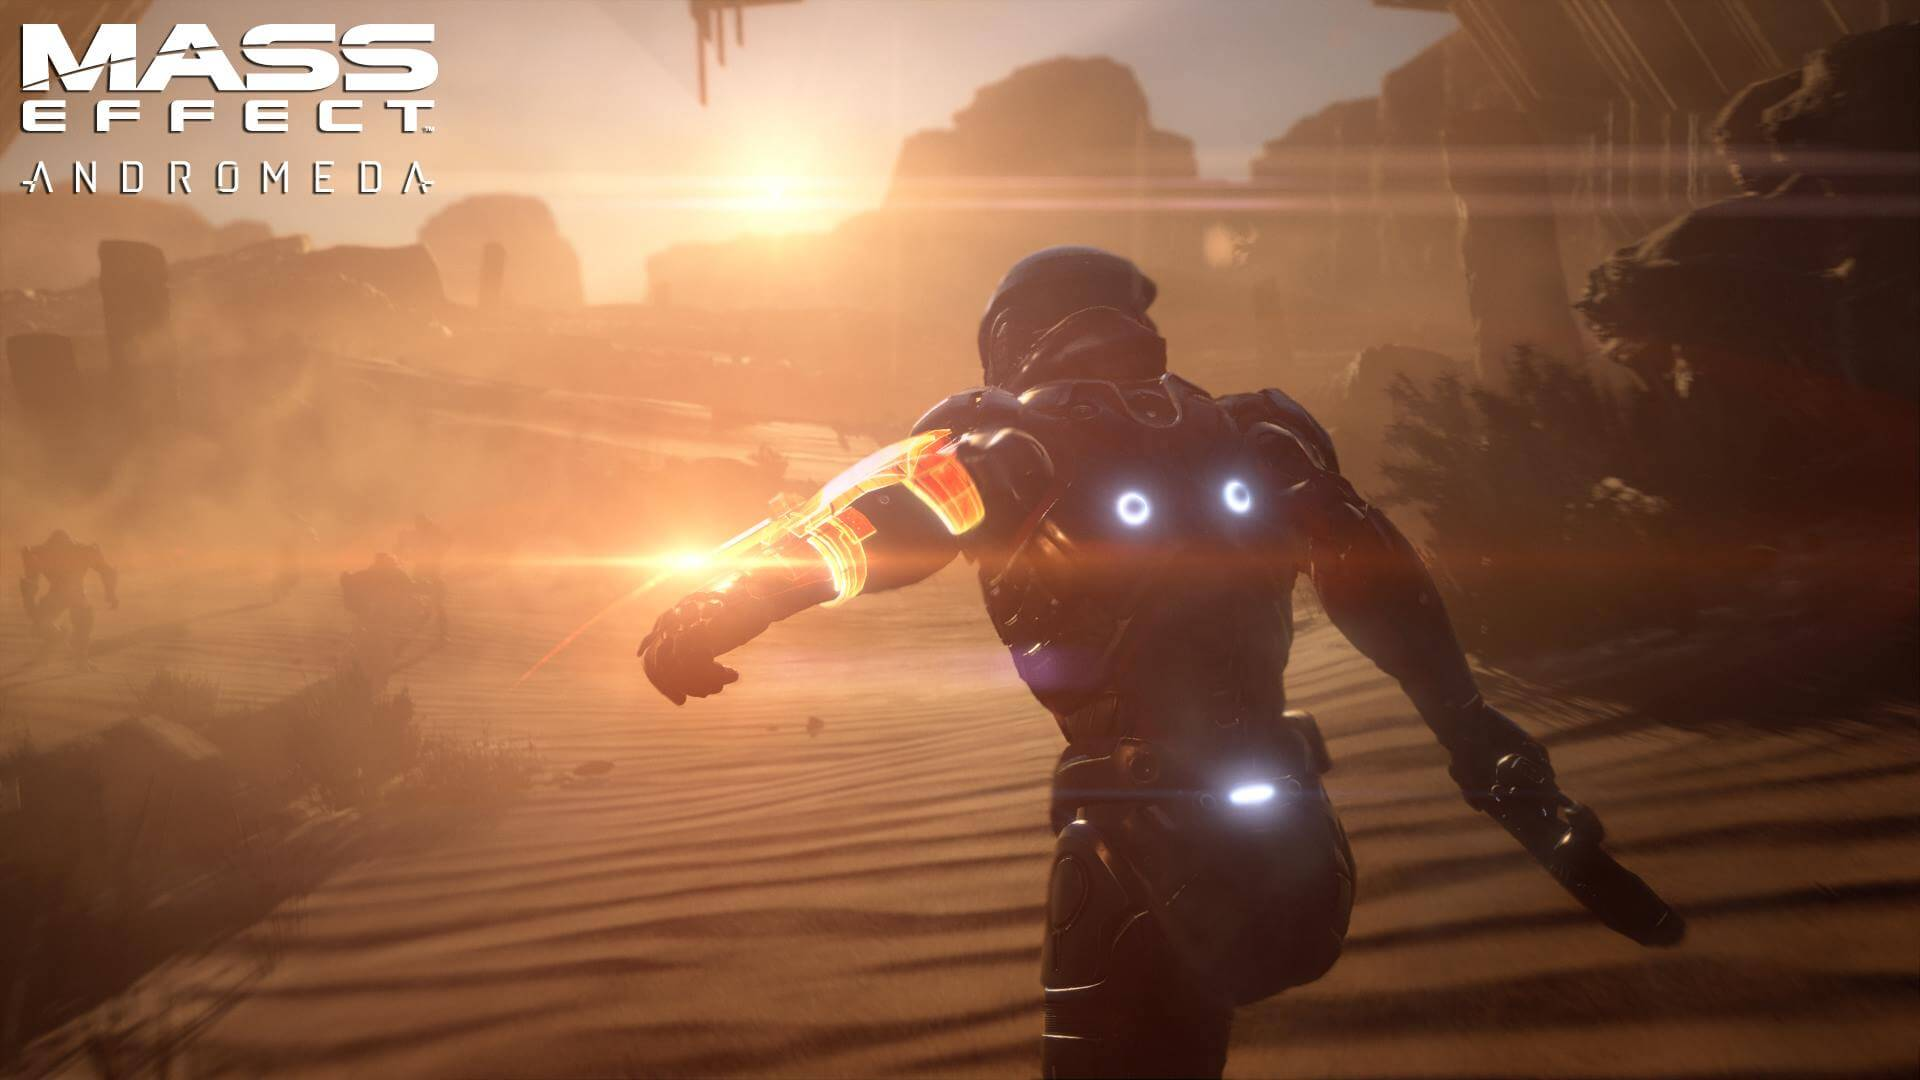 New Mass Effect: Andromeda Gameplay - January 4th